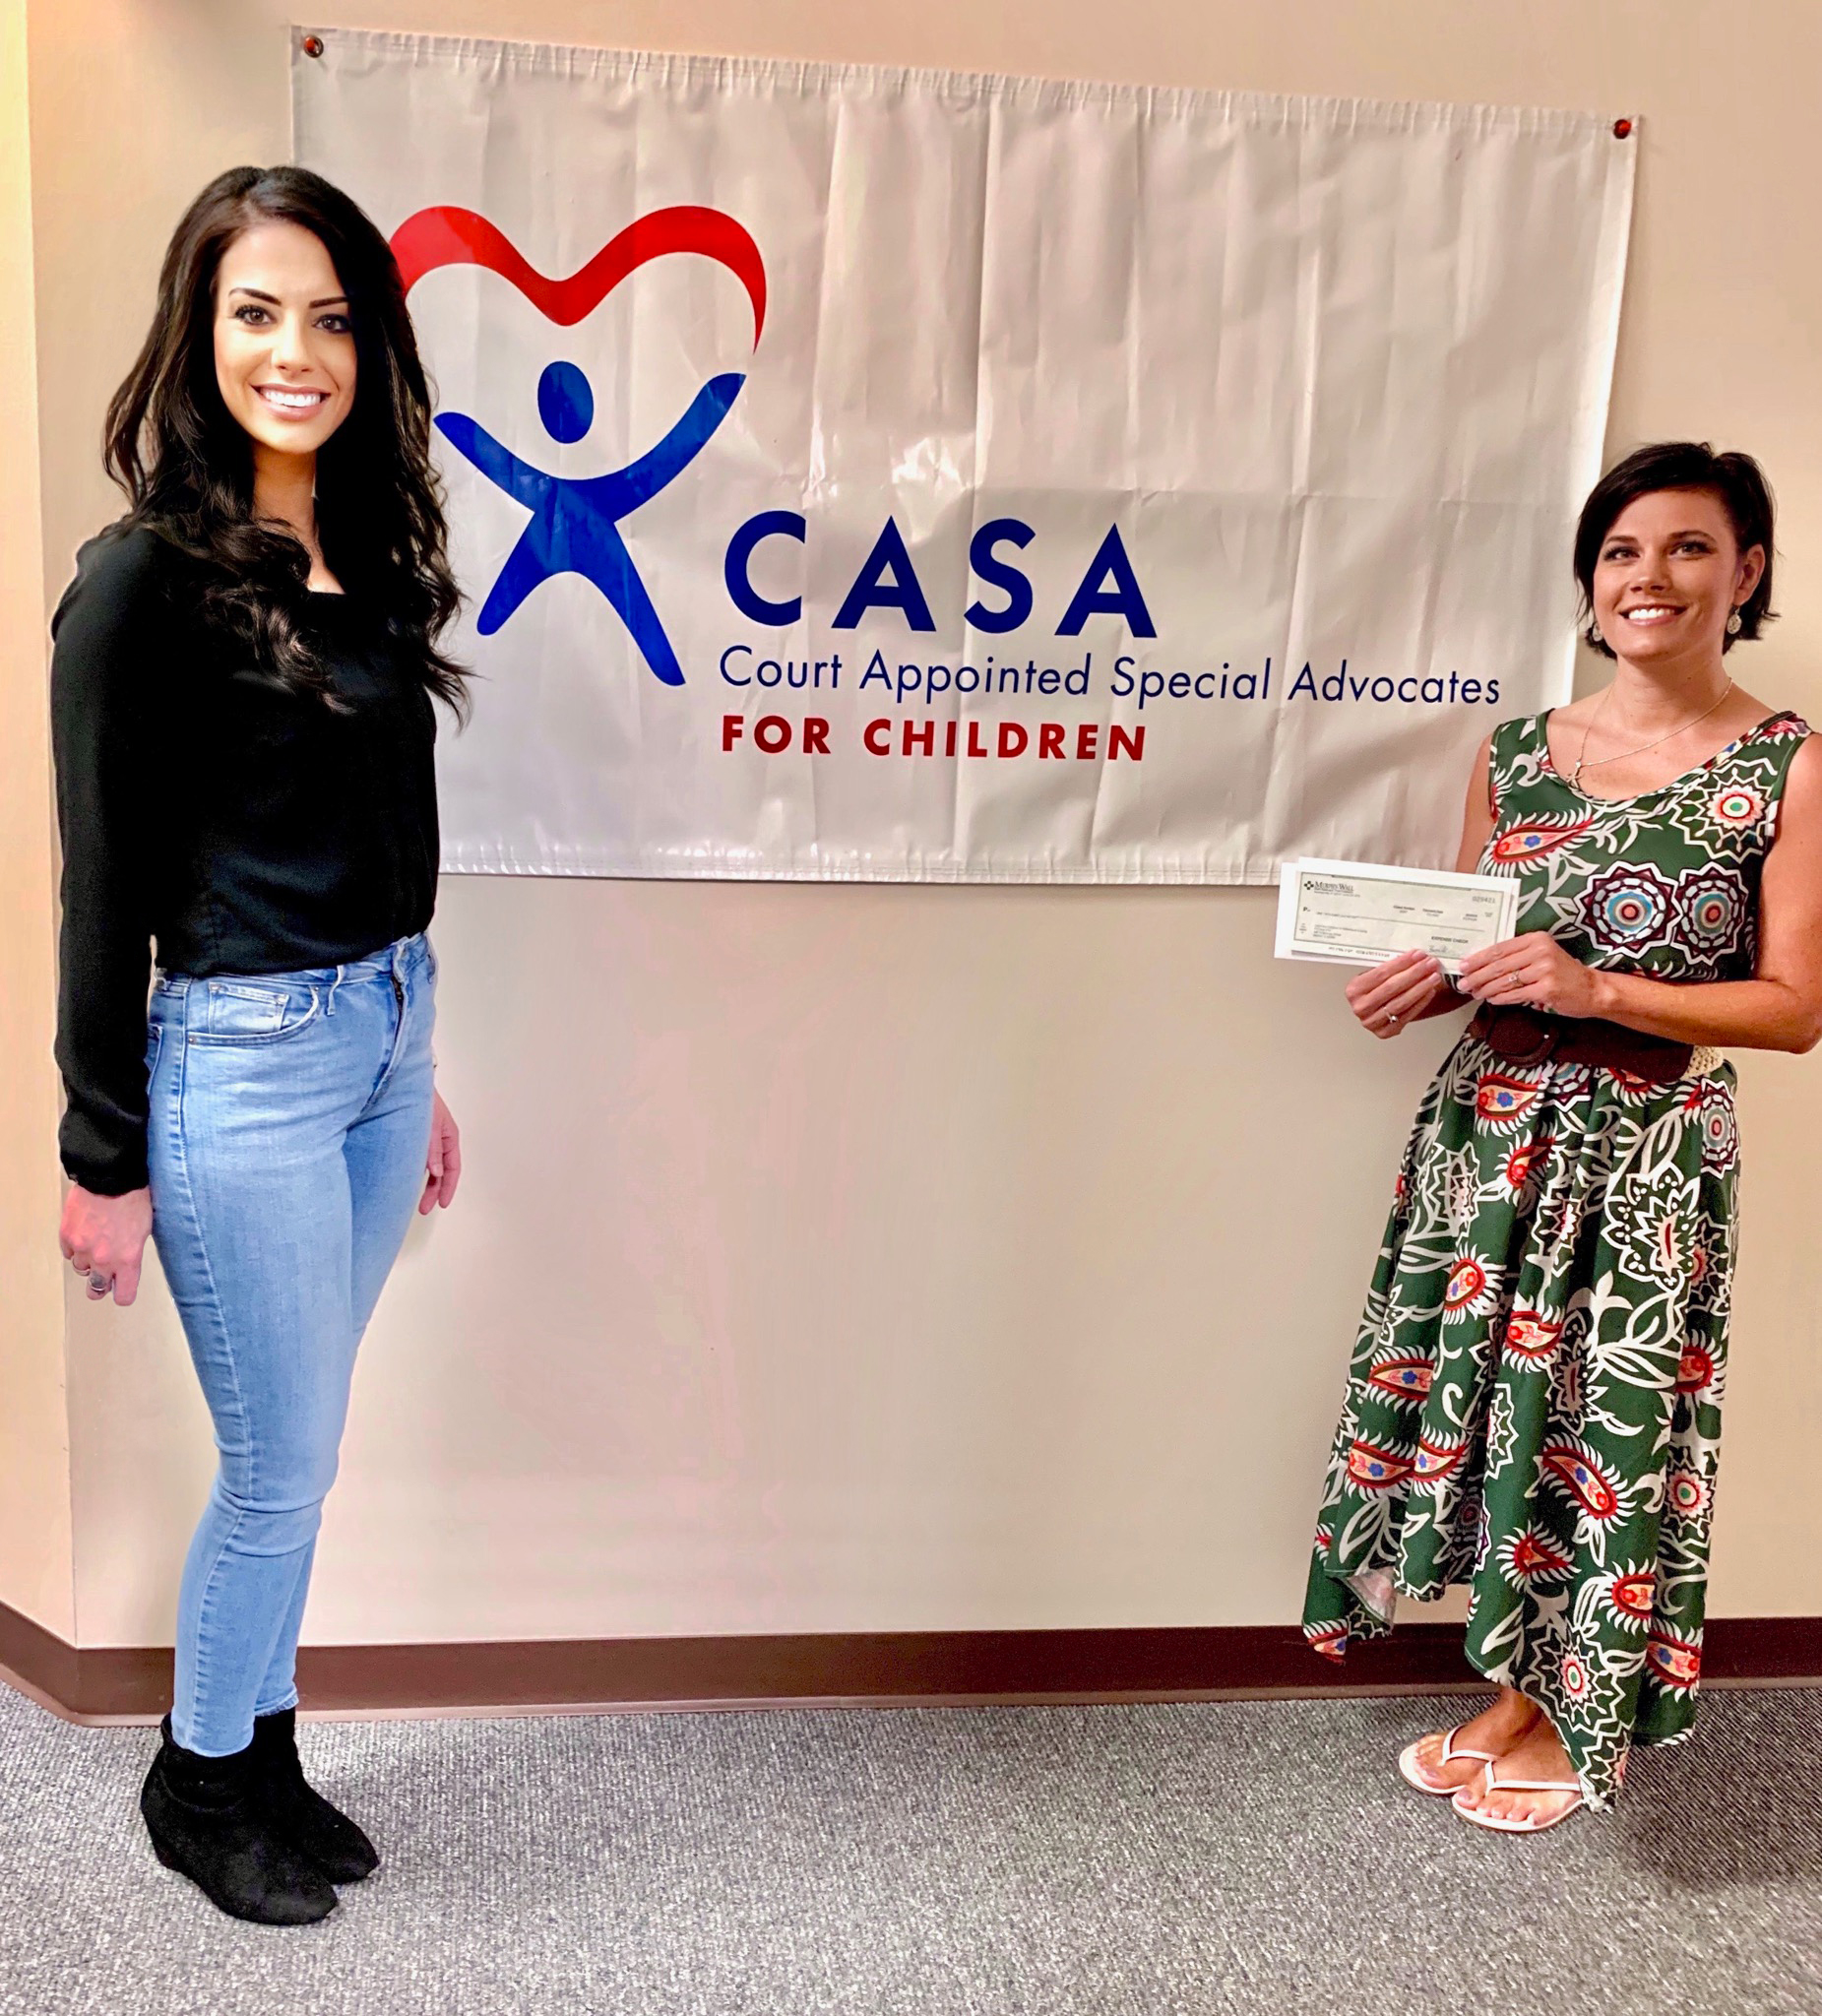 Murphy-Wall State Bank AVP/Branch Manager Bailey Thompson gives Casa of Williamson County (Court Appointed Special Advocates) Executive Director Nannette Vaughn a COVID-19 Relief donation from the FHLB of Chicago